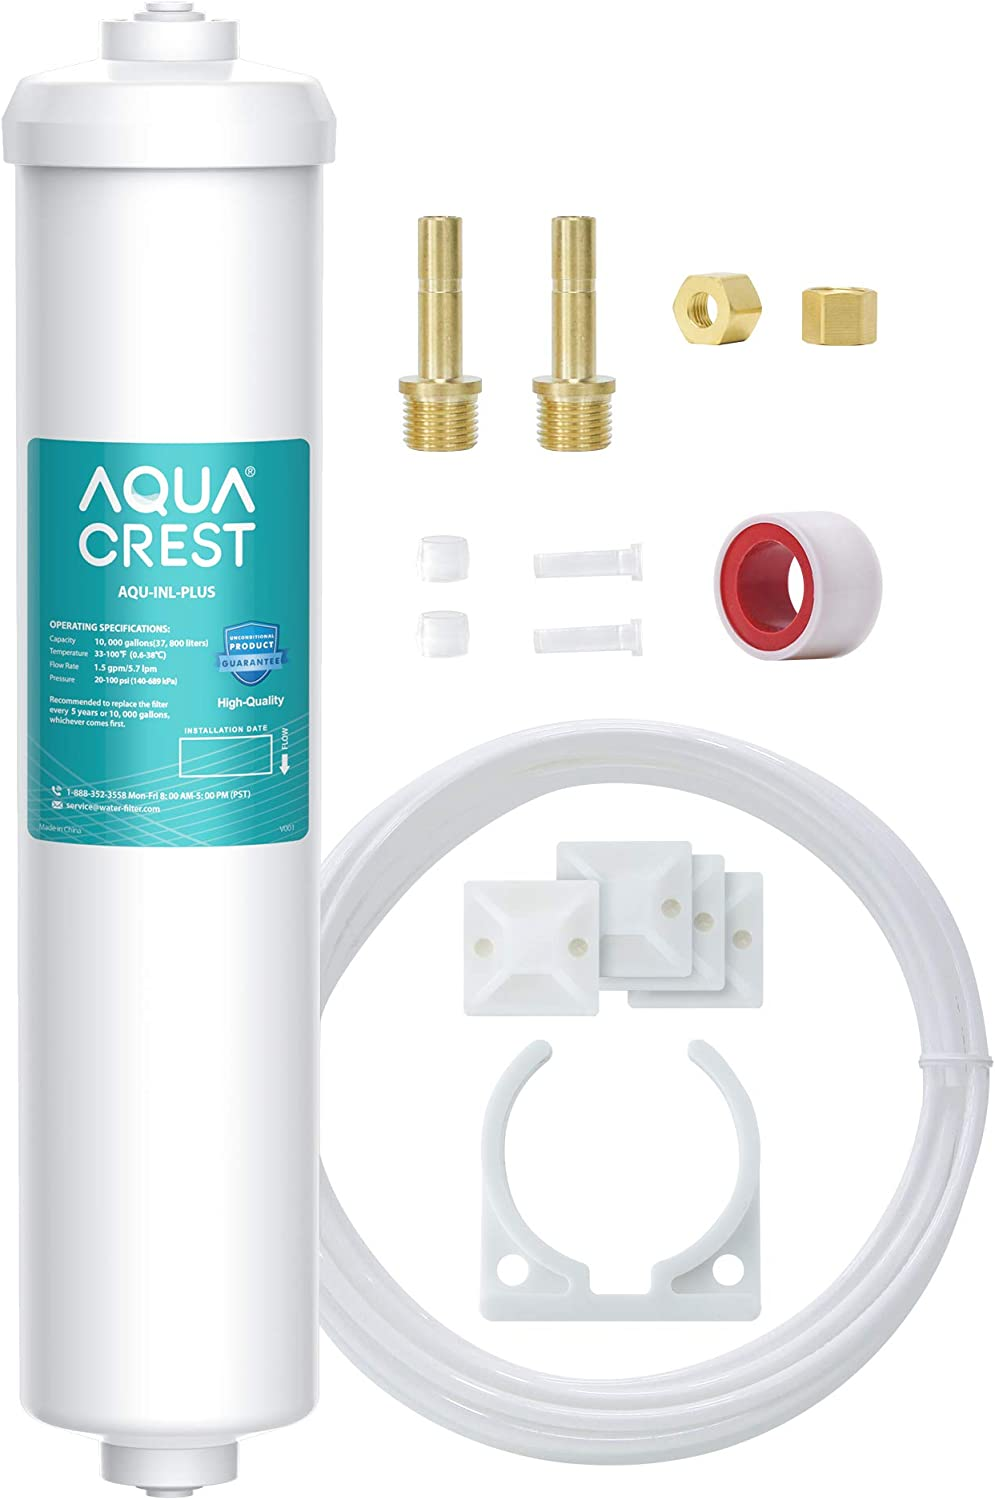 AQUACREST In-Line Water Filter for Refrigerator and Ice Maker, 10,000 Gallons High Capacity, 1/4-Inch Direct Connect Fittings, Reduces Lead, Chlorine, Bad Taste & Odor